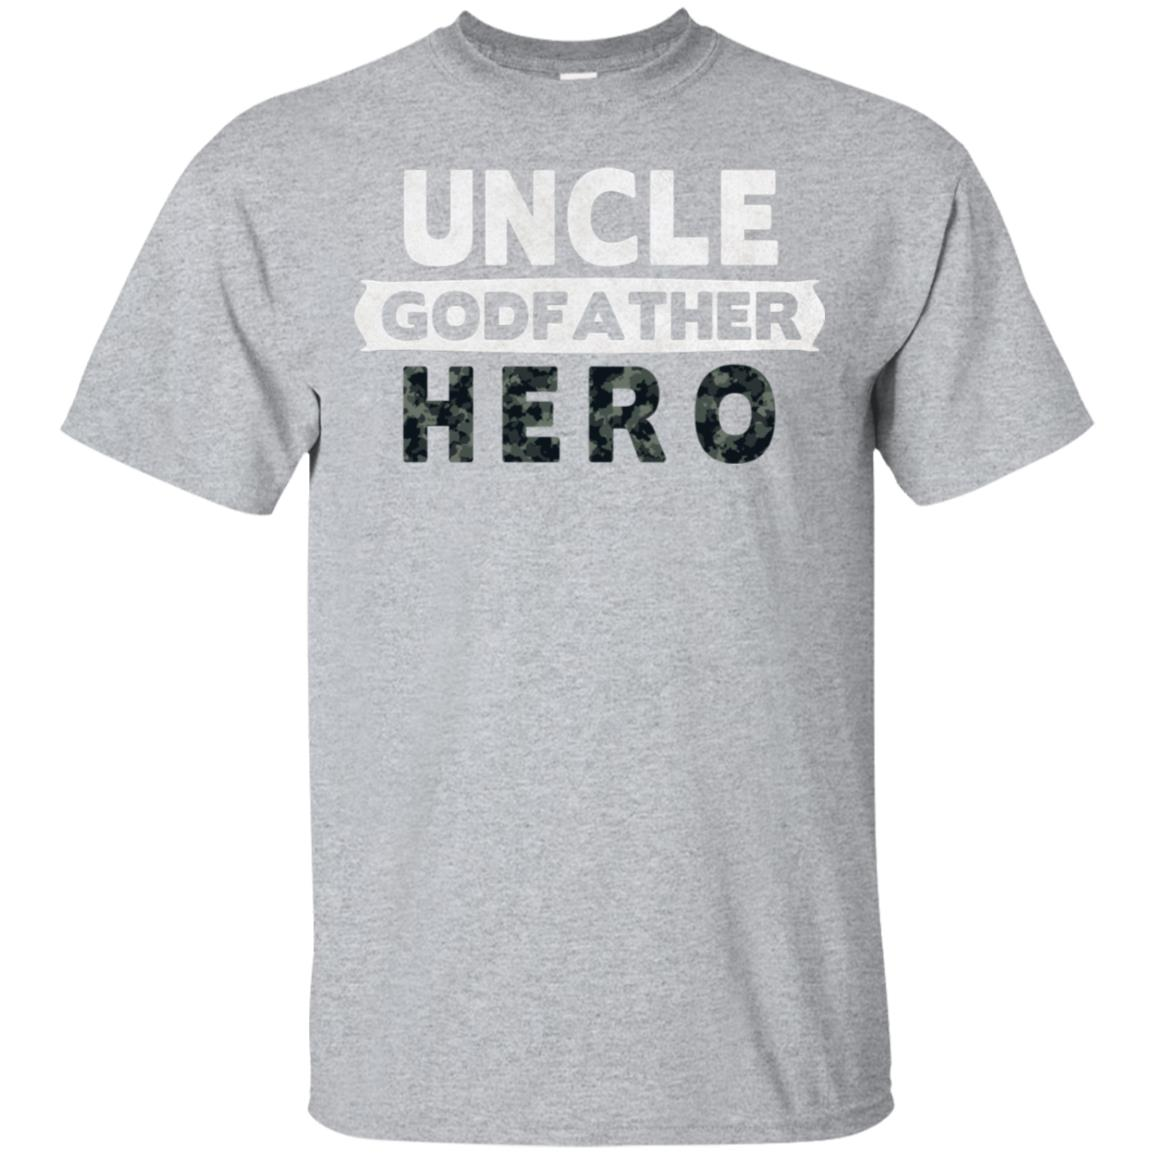 Uncle, Godfather and Hero – Military Hero Godfather Ls Unisex Short Sleeve